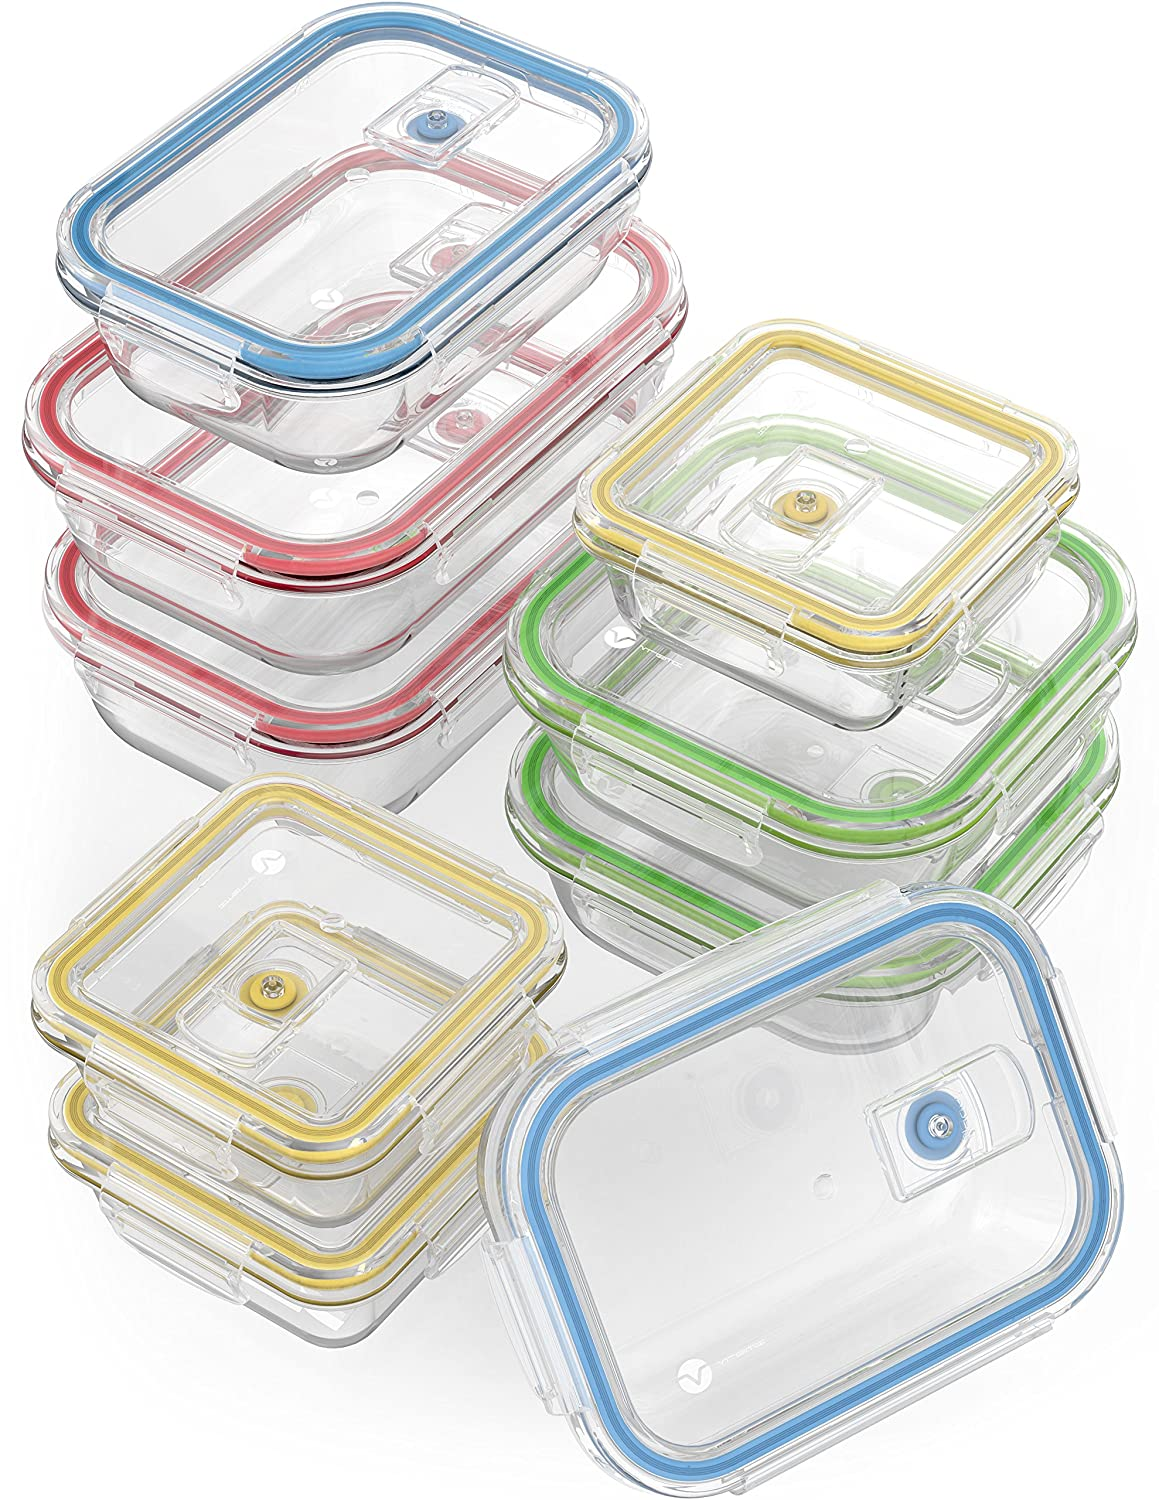 food storage containers, food containers, airtight containers, food storage, glass food storage containers, airtight food storage containers, food canisters, dry food storage, vremi, vremi cookware, vremi cookware reviews, vremi 15 piece nonstick cookware set, vremi cookware set